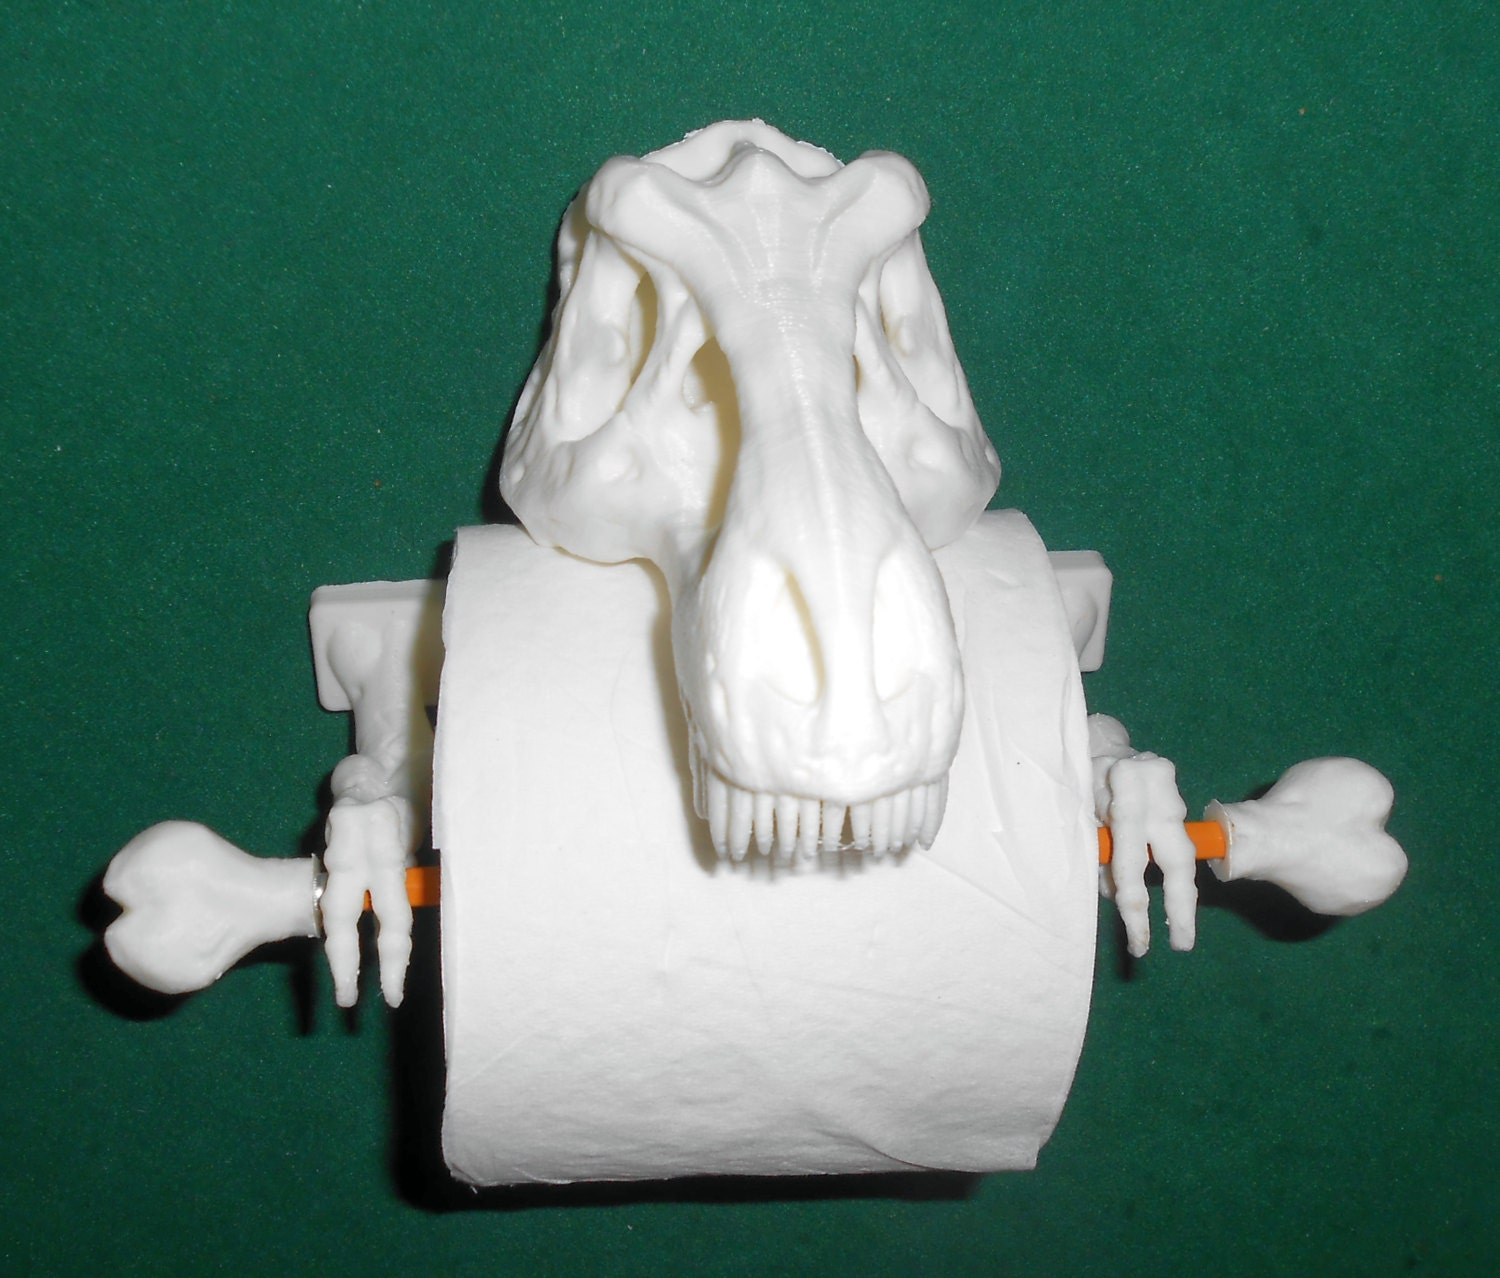 T Rex Toilet Paper Holder 3d Printed Bathroom Accessories